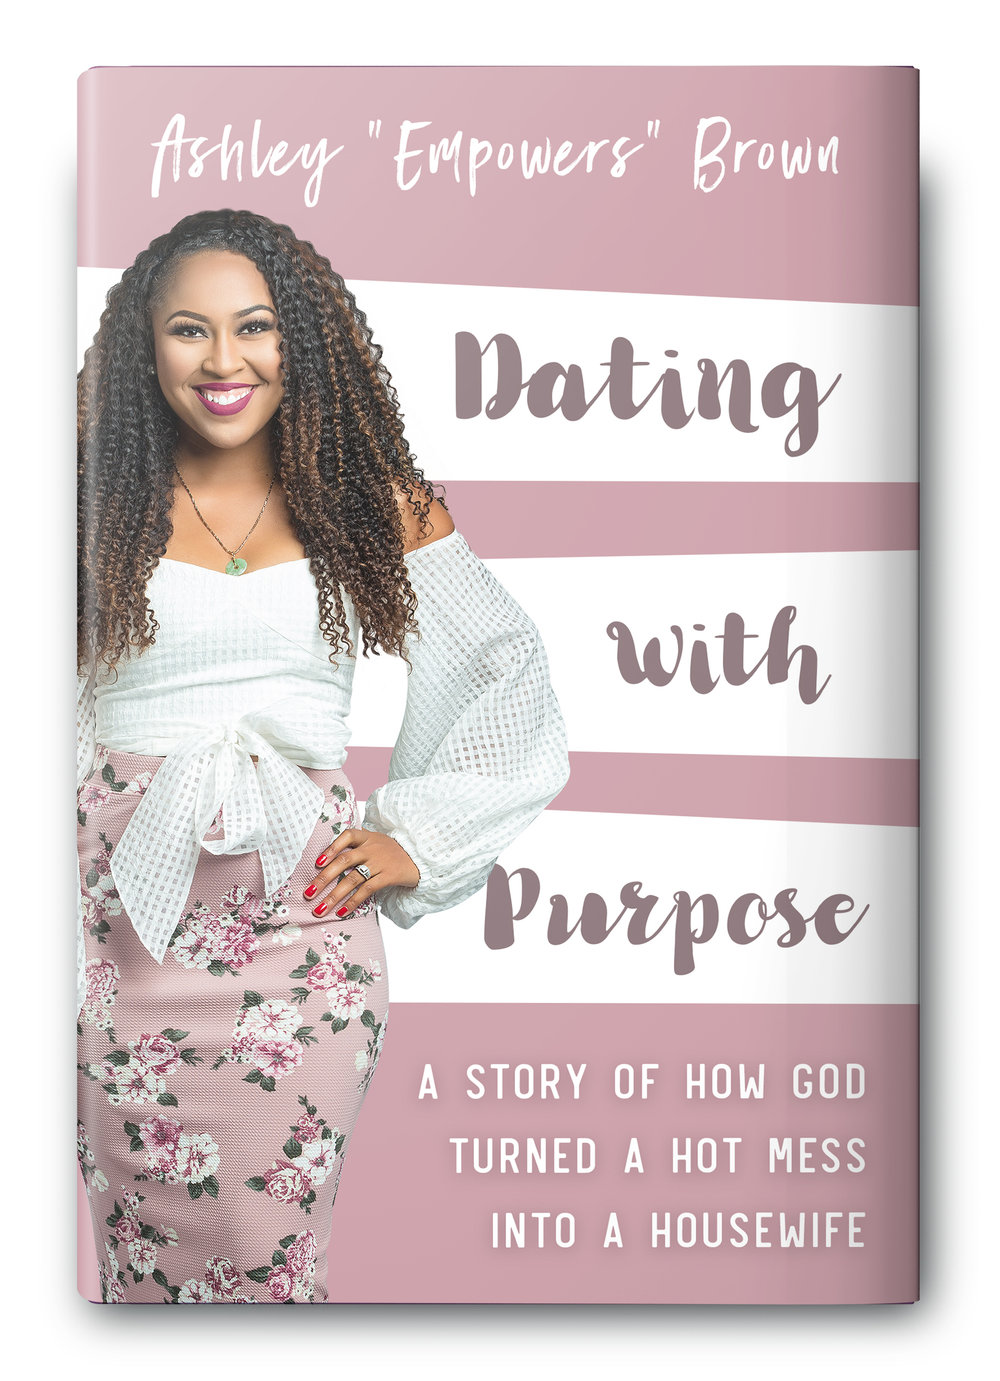 Ashley's Book.Dating With Purpose: A Story Of How God Turned a Hot Mess Into a Housewife